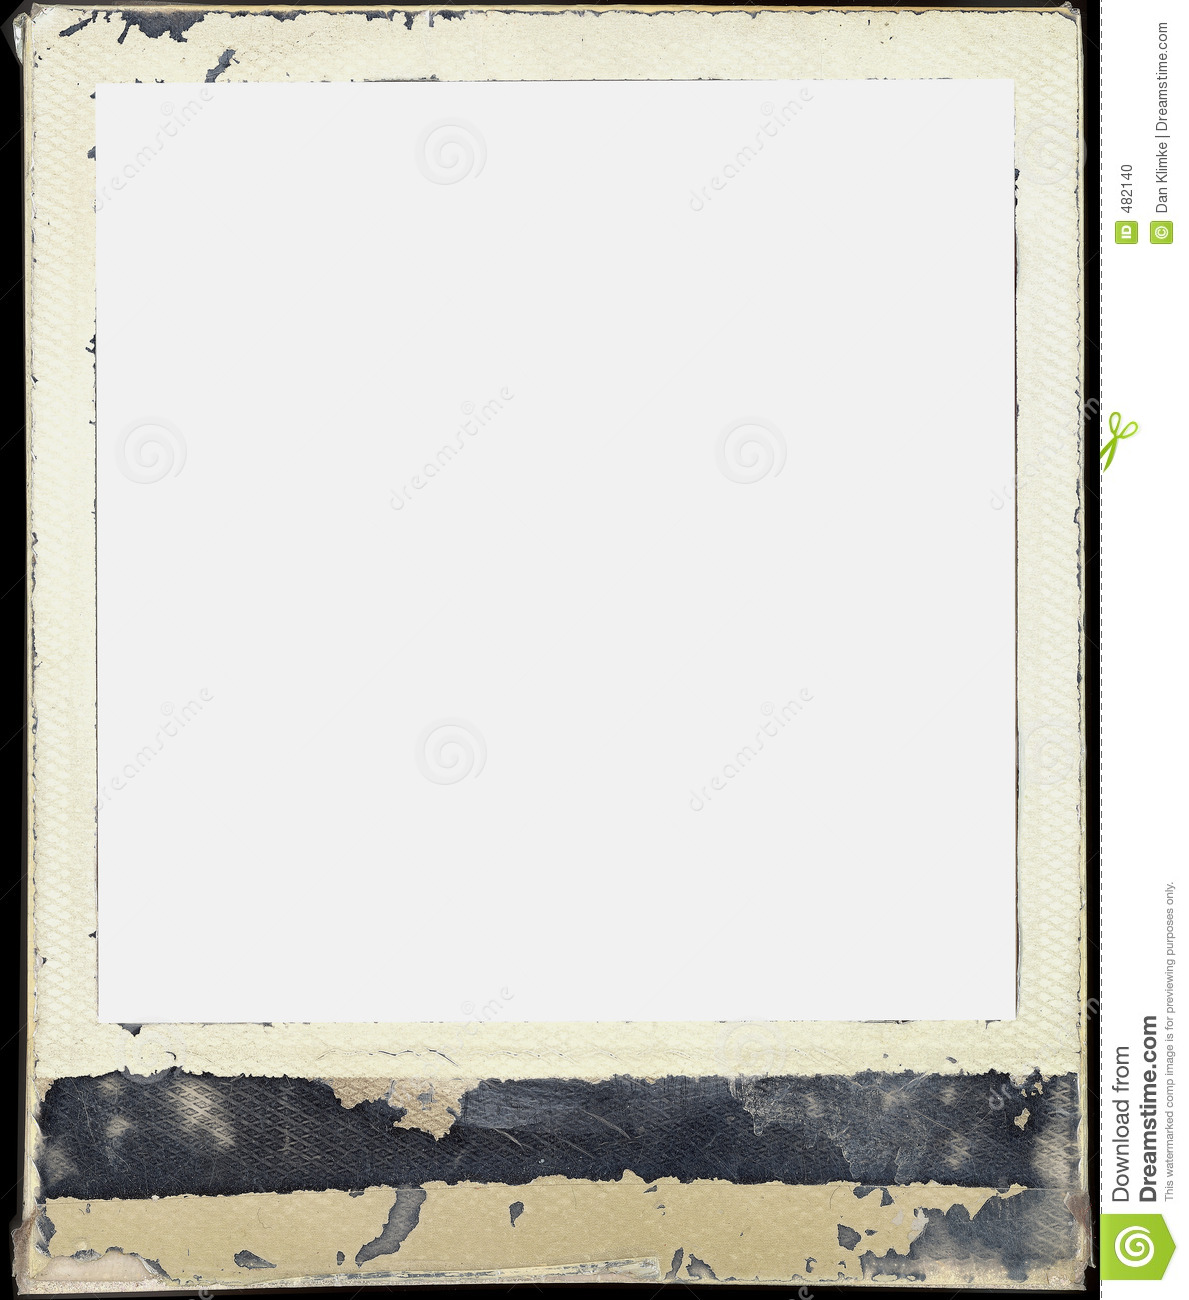 Polaroid frame stock photo. Image of grungy, polaroid, film - 482140